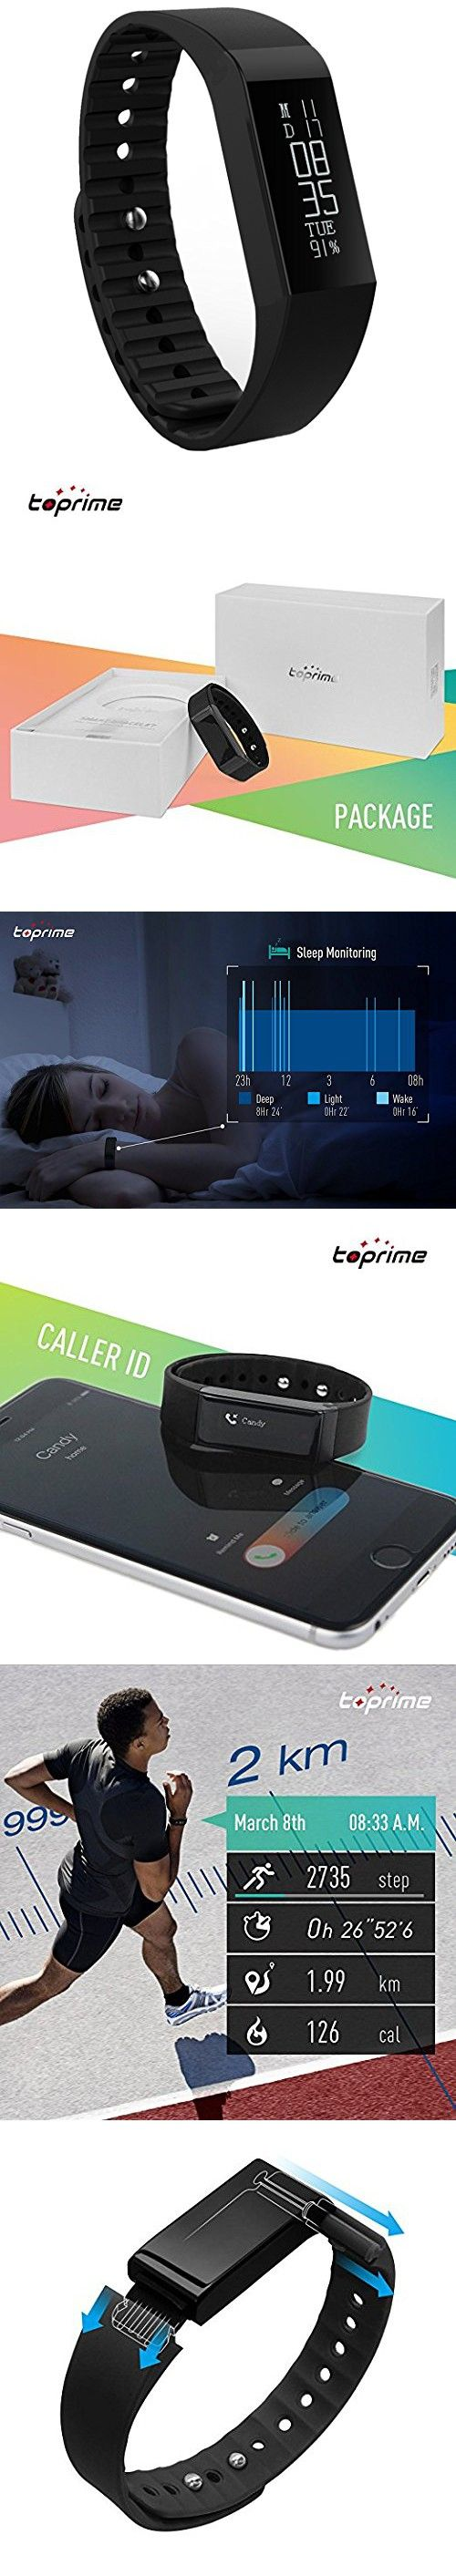 Toprime Fitness Activity Tracker Track Steps Calorie Burned Sleep Quality Work with App Via Bluetooth for ios and Android Built in USB Charge